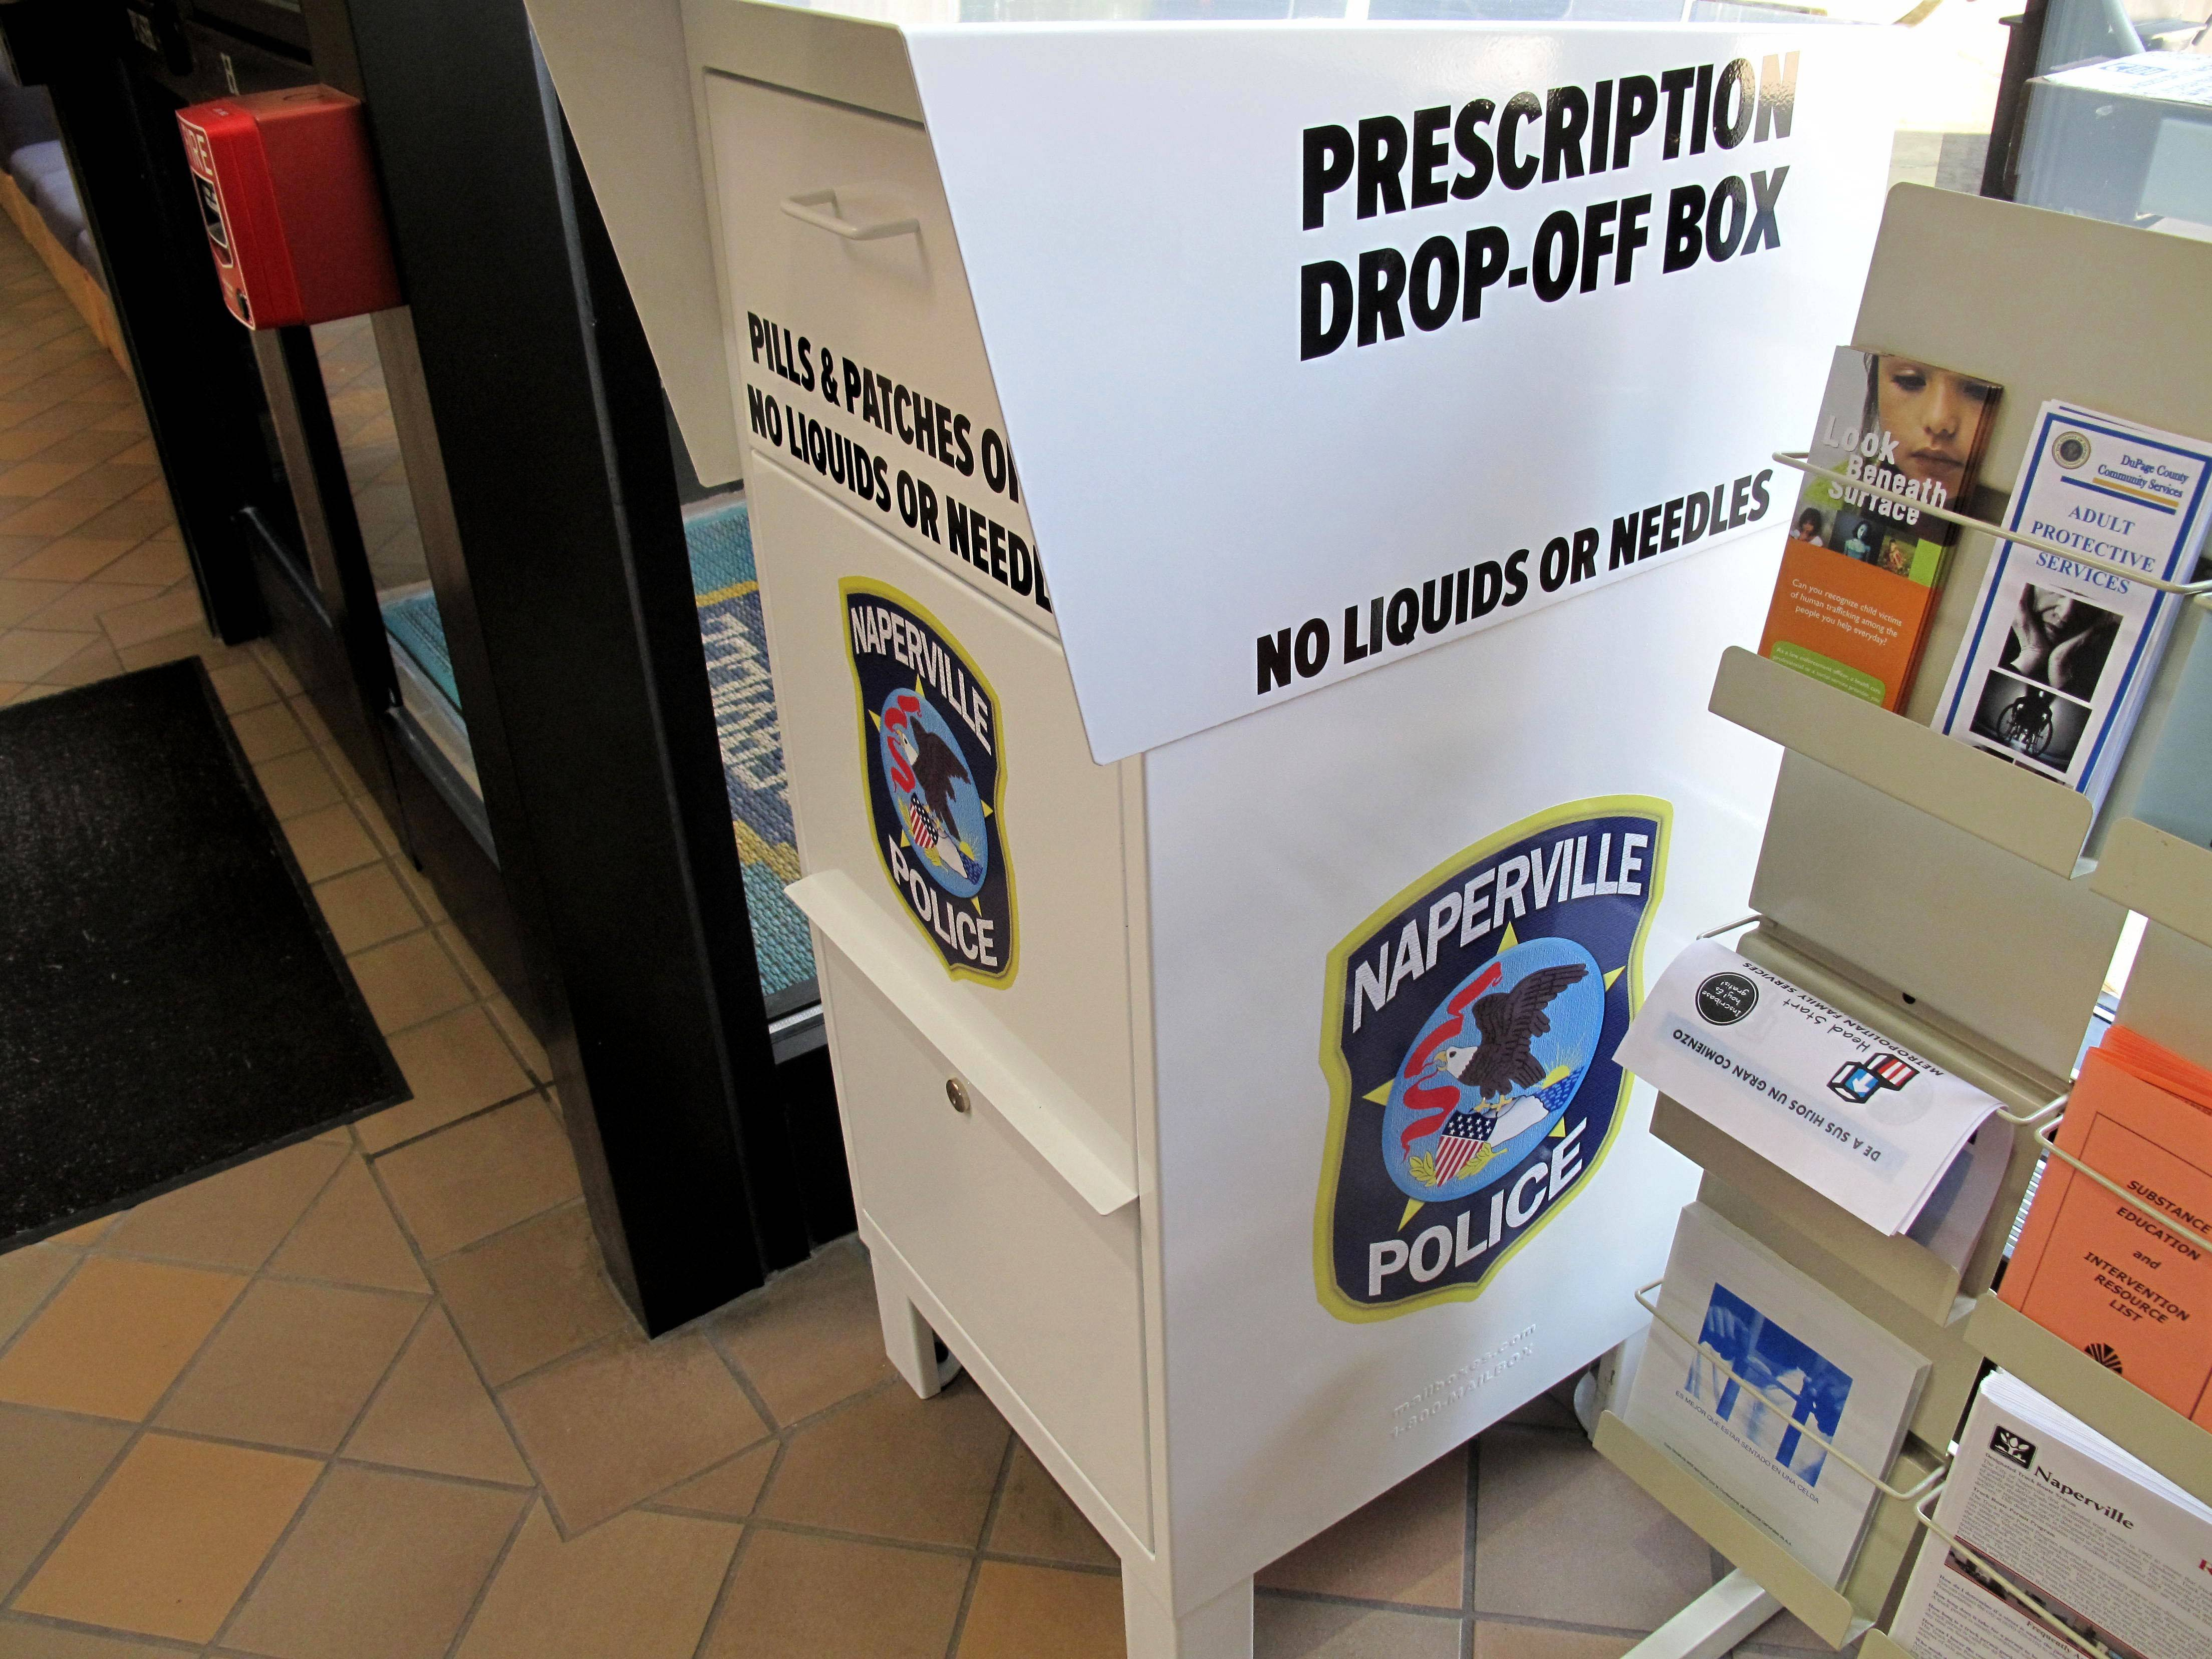 Naperville's police and fire departments already offer 11 prescription drop-off boxes, but on Tuesday, they also will be accepting unwanted drugs at 37 National Night Out events across the city.